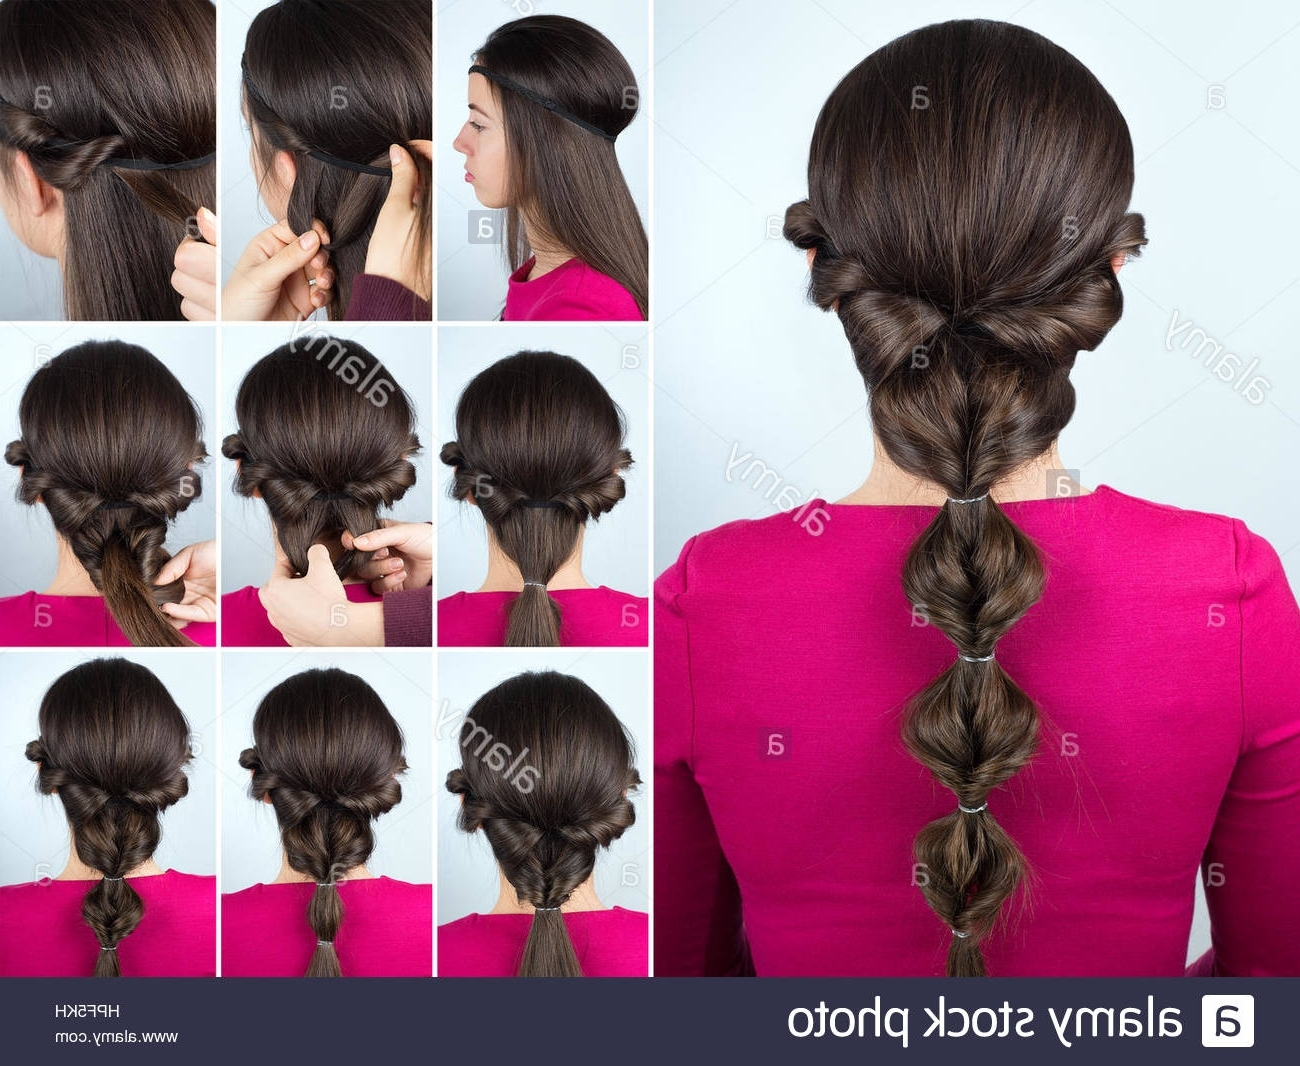 Long Twisted Hair Stock Photos & Long Twisted Hair Stock Images – Alamy With Regard To Most Up To Date Tangled And Twisted Ponytail Hairstyles (View 16 of 20)